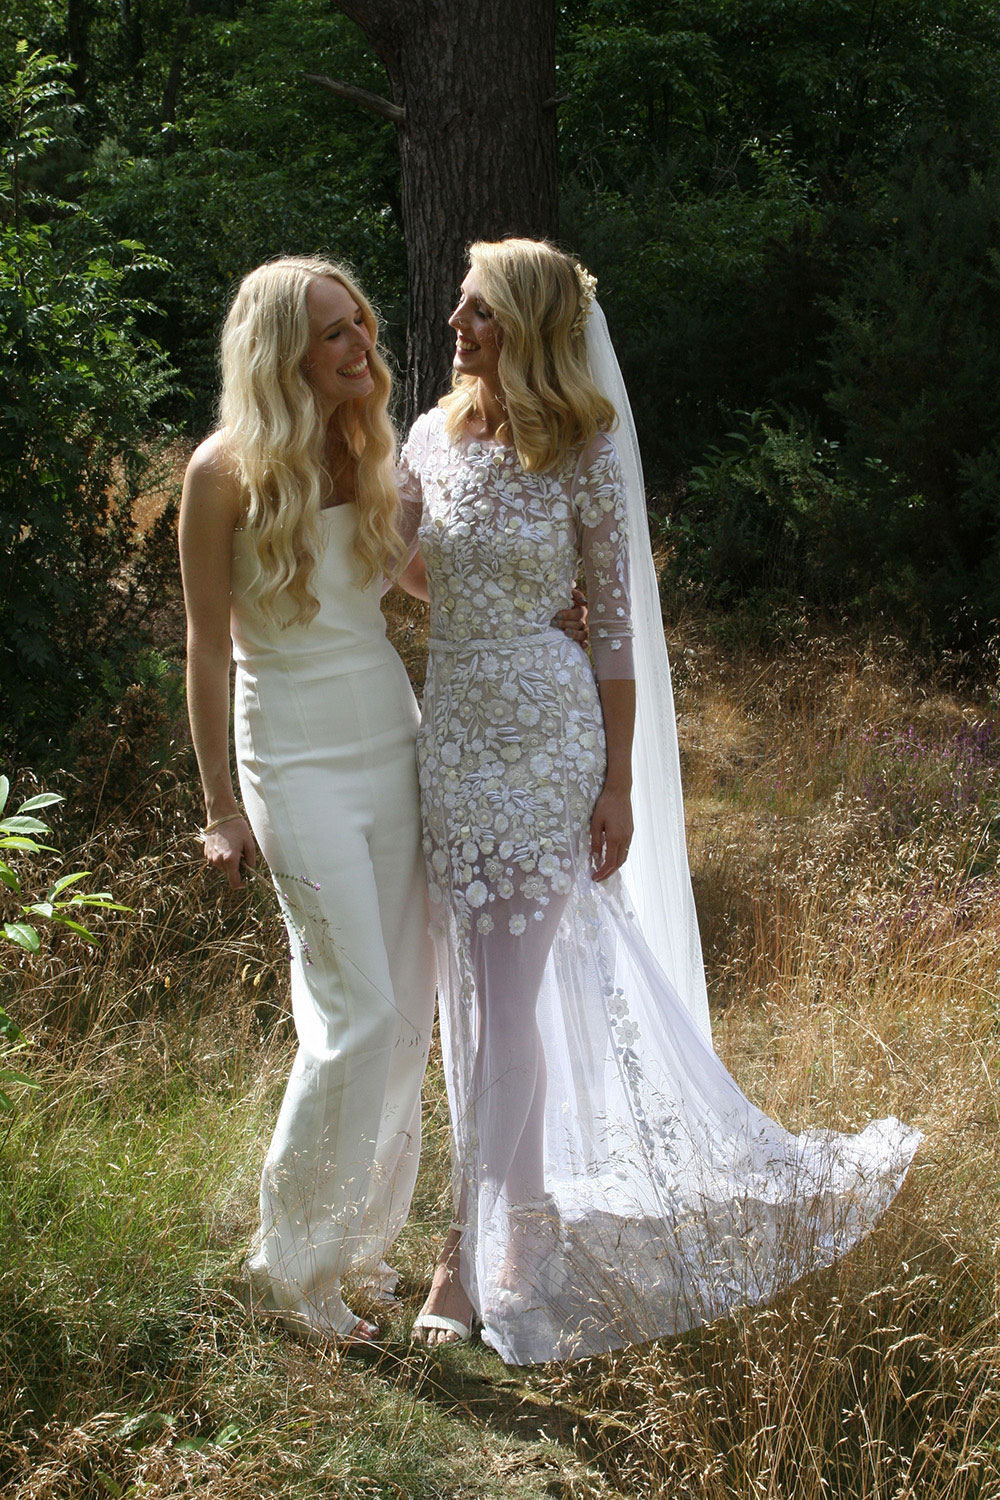 Kristina hdep bridal bespoke wedding dresses kristina hdep bridal wedding dress 3 ombrellifo Gallery